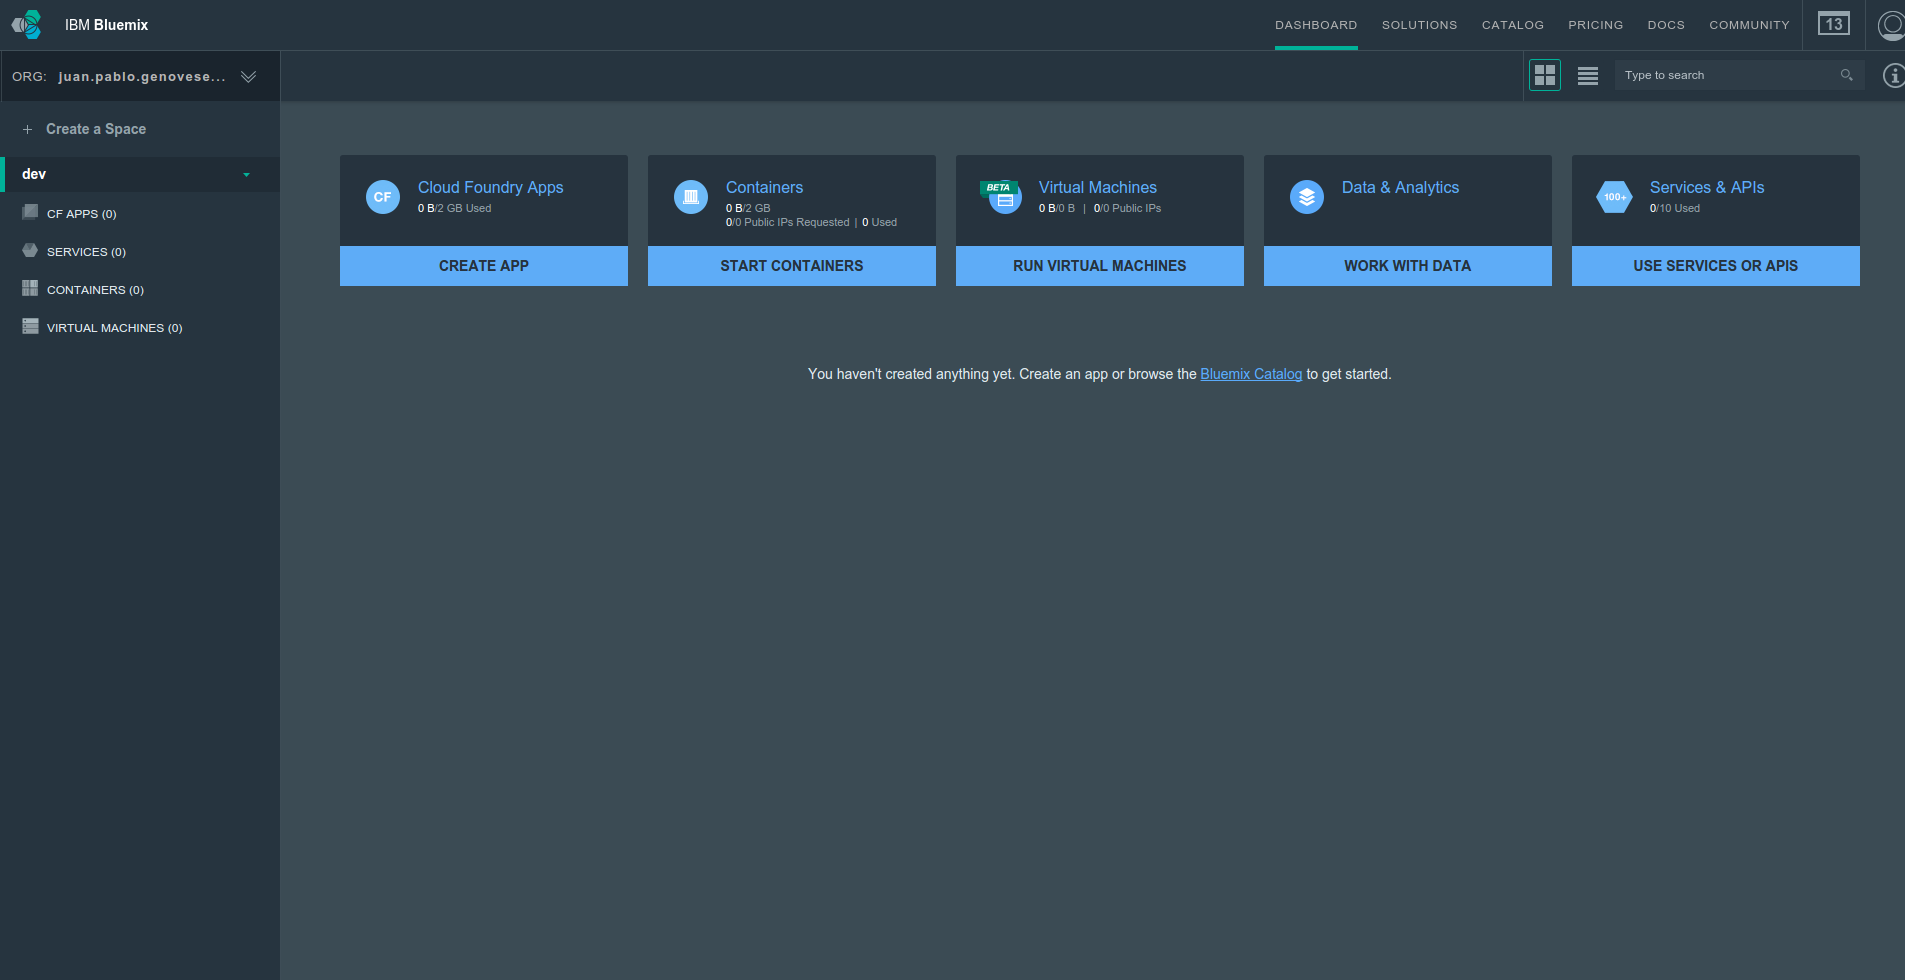 ibm-bluemix-console-dashboard